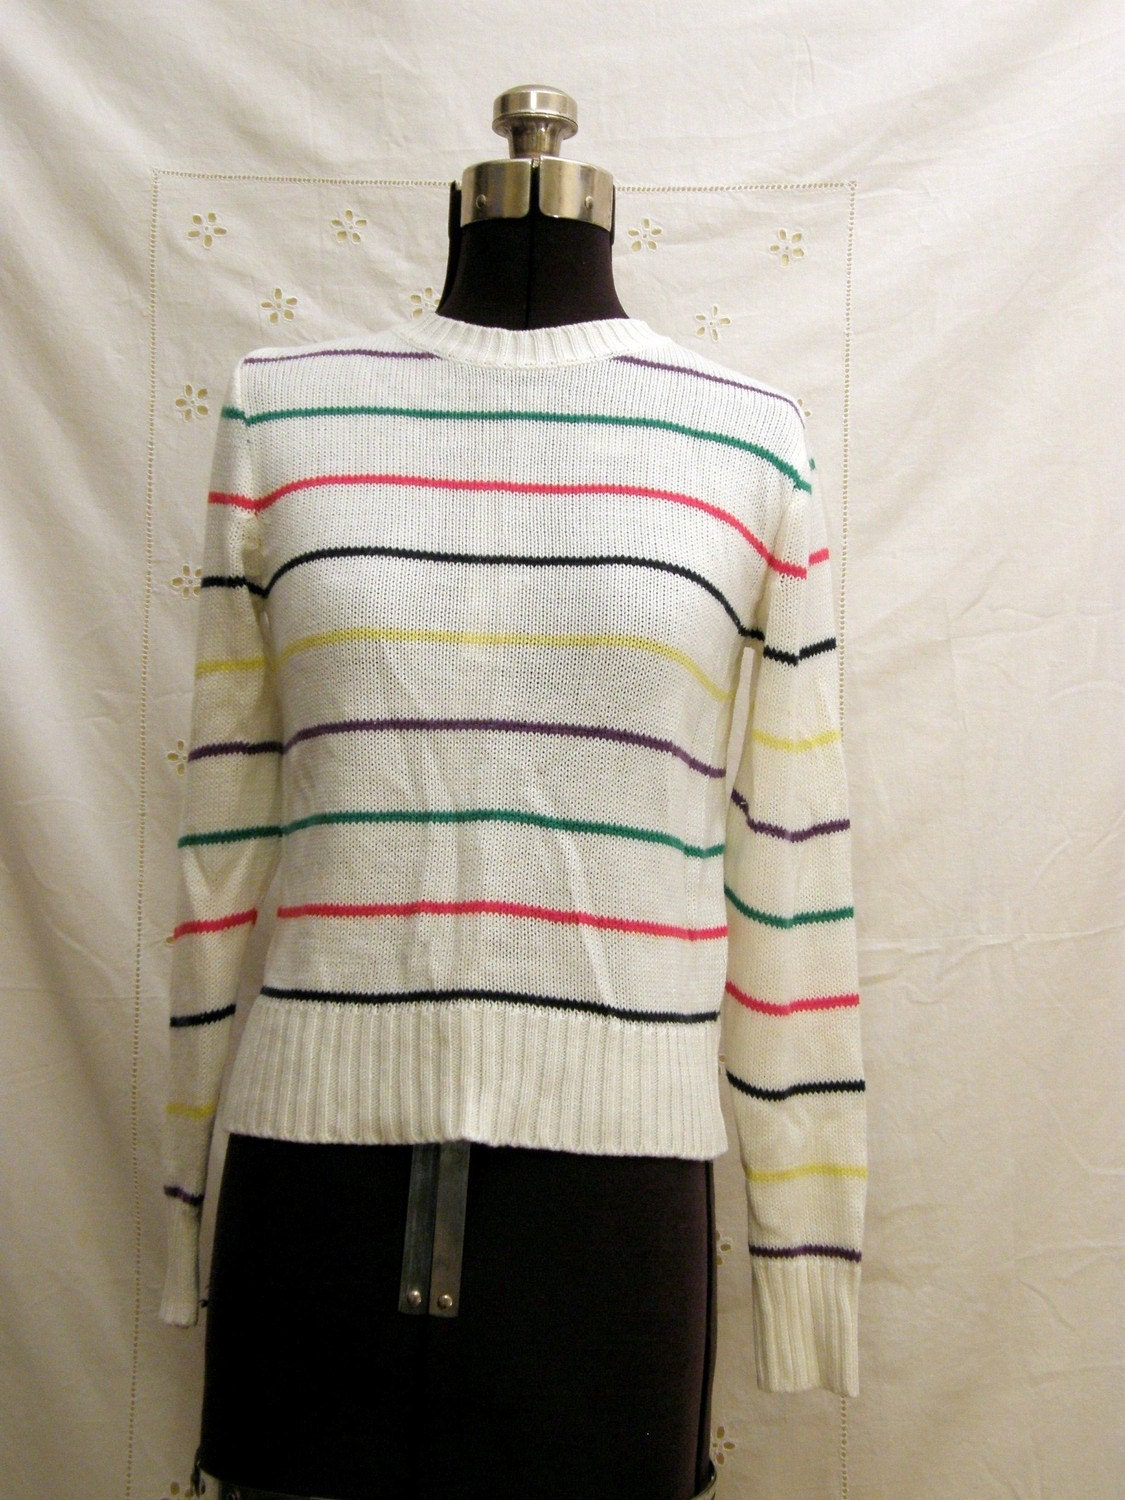 SALE// SALE Vintage Rainbow Striped Sweater free USA shipping